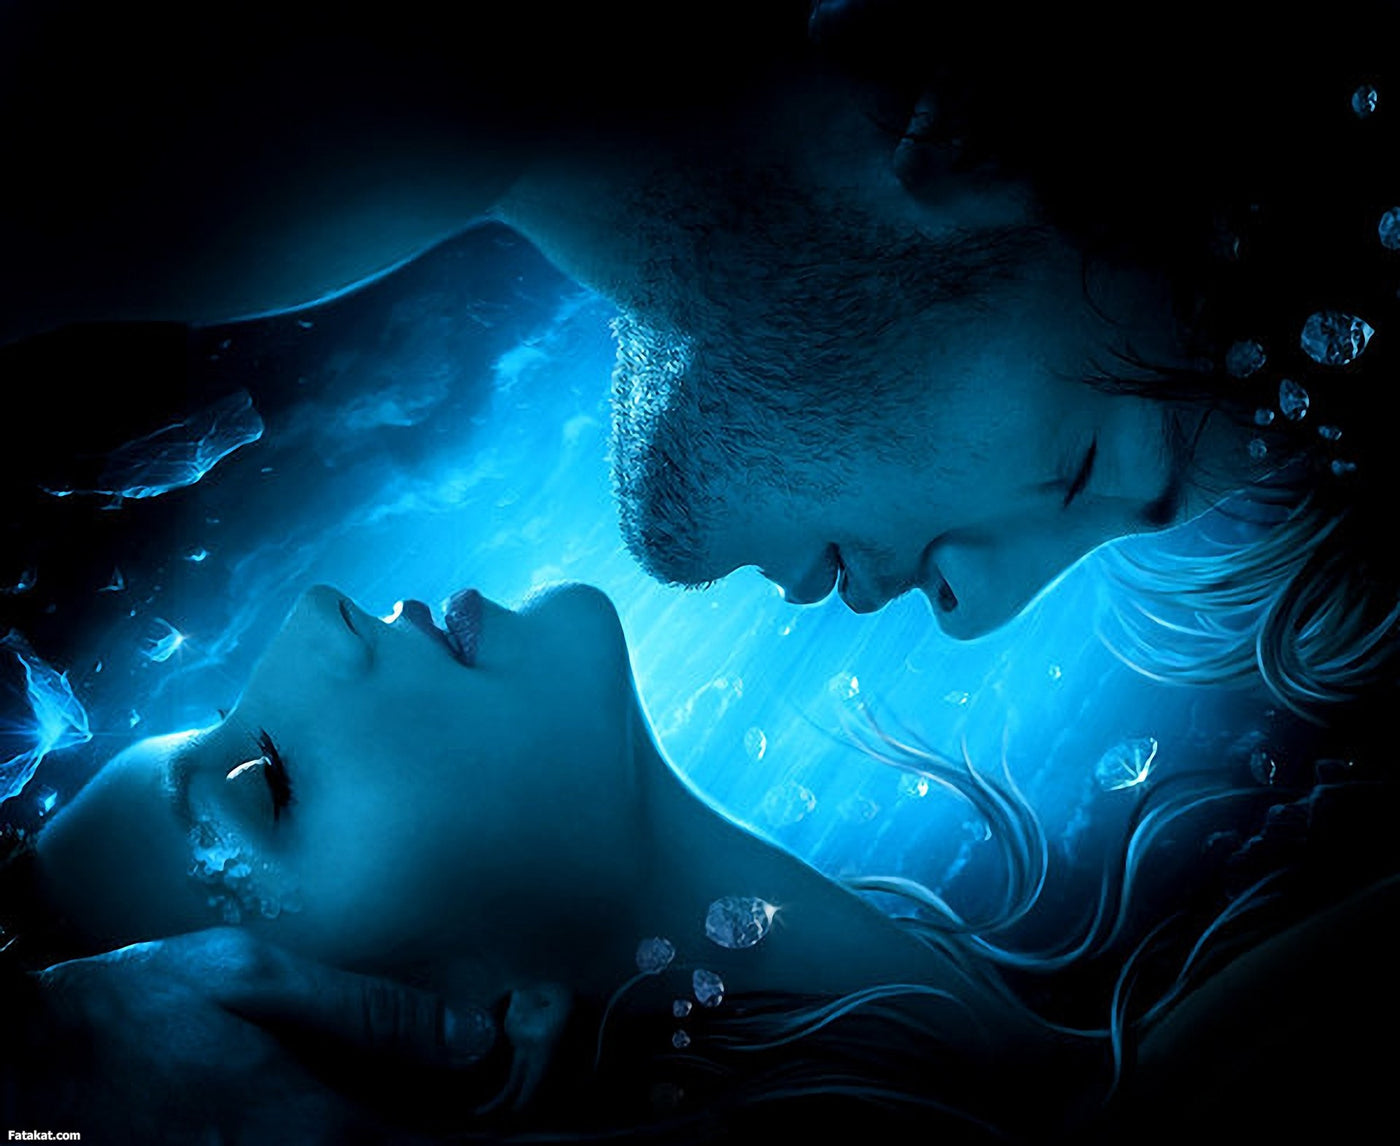 How To Tell If Your Relationship is Karmic, Soulmate or Twin Flame